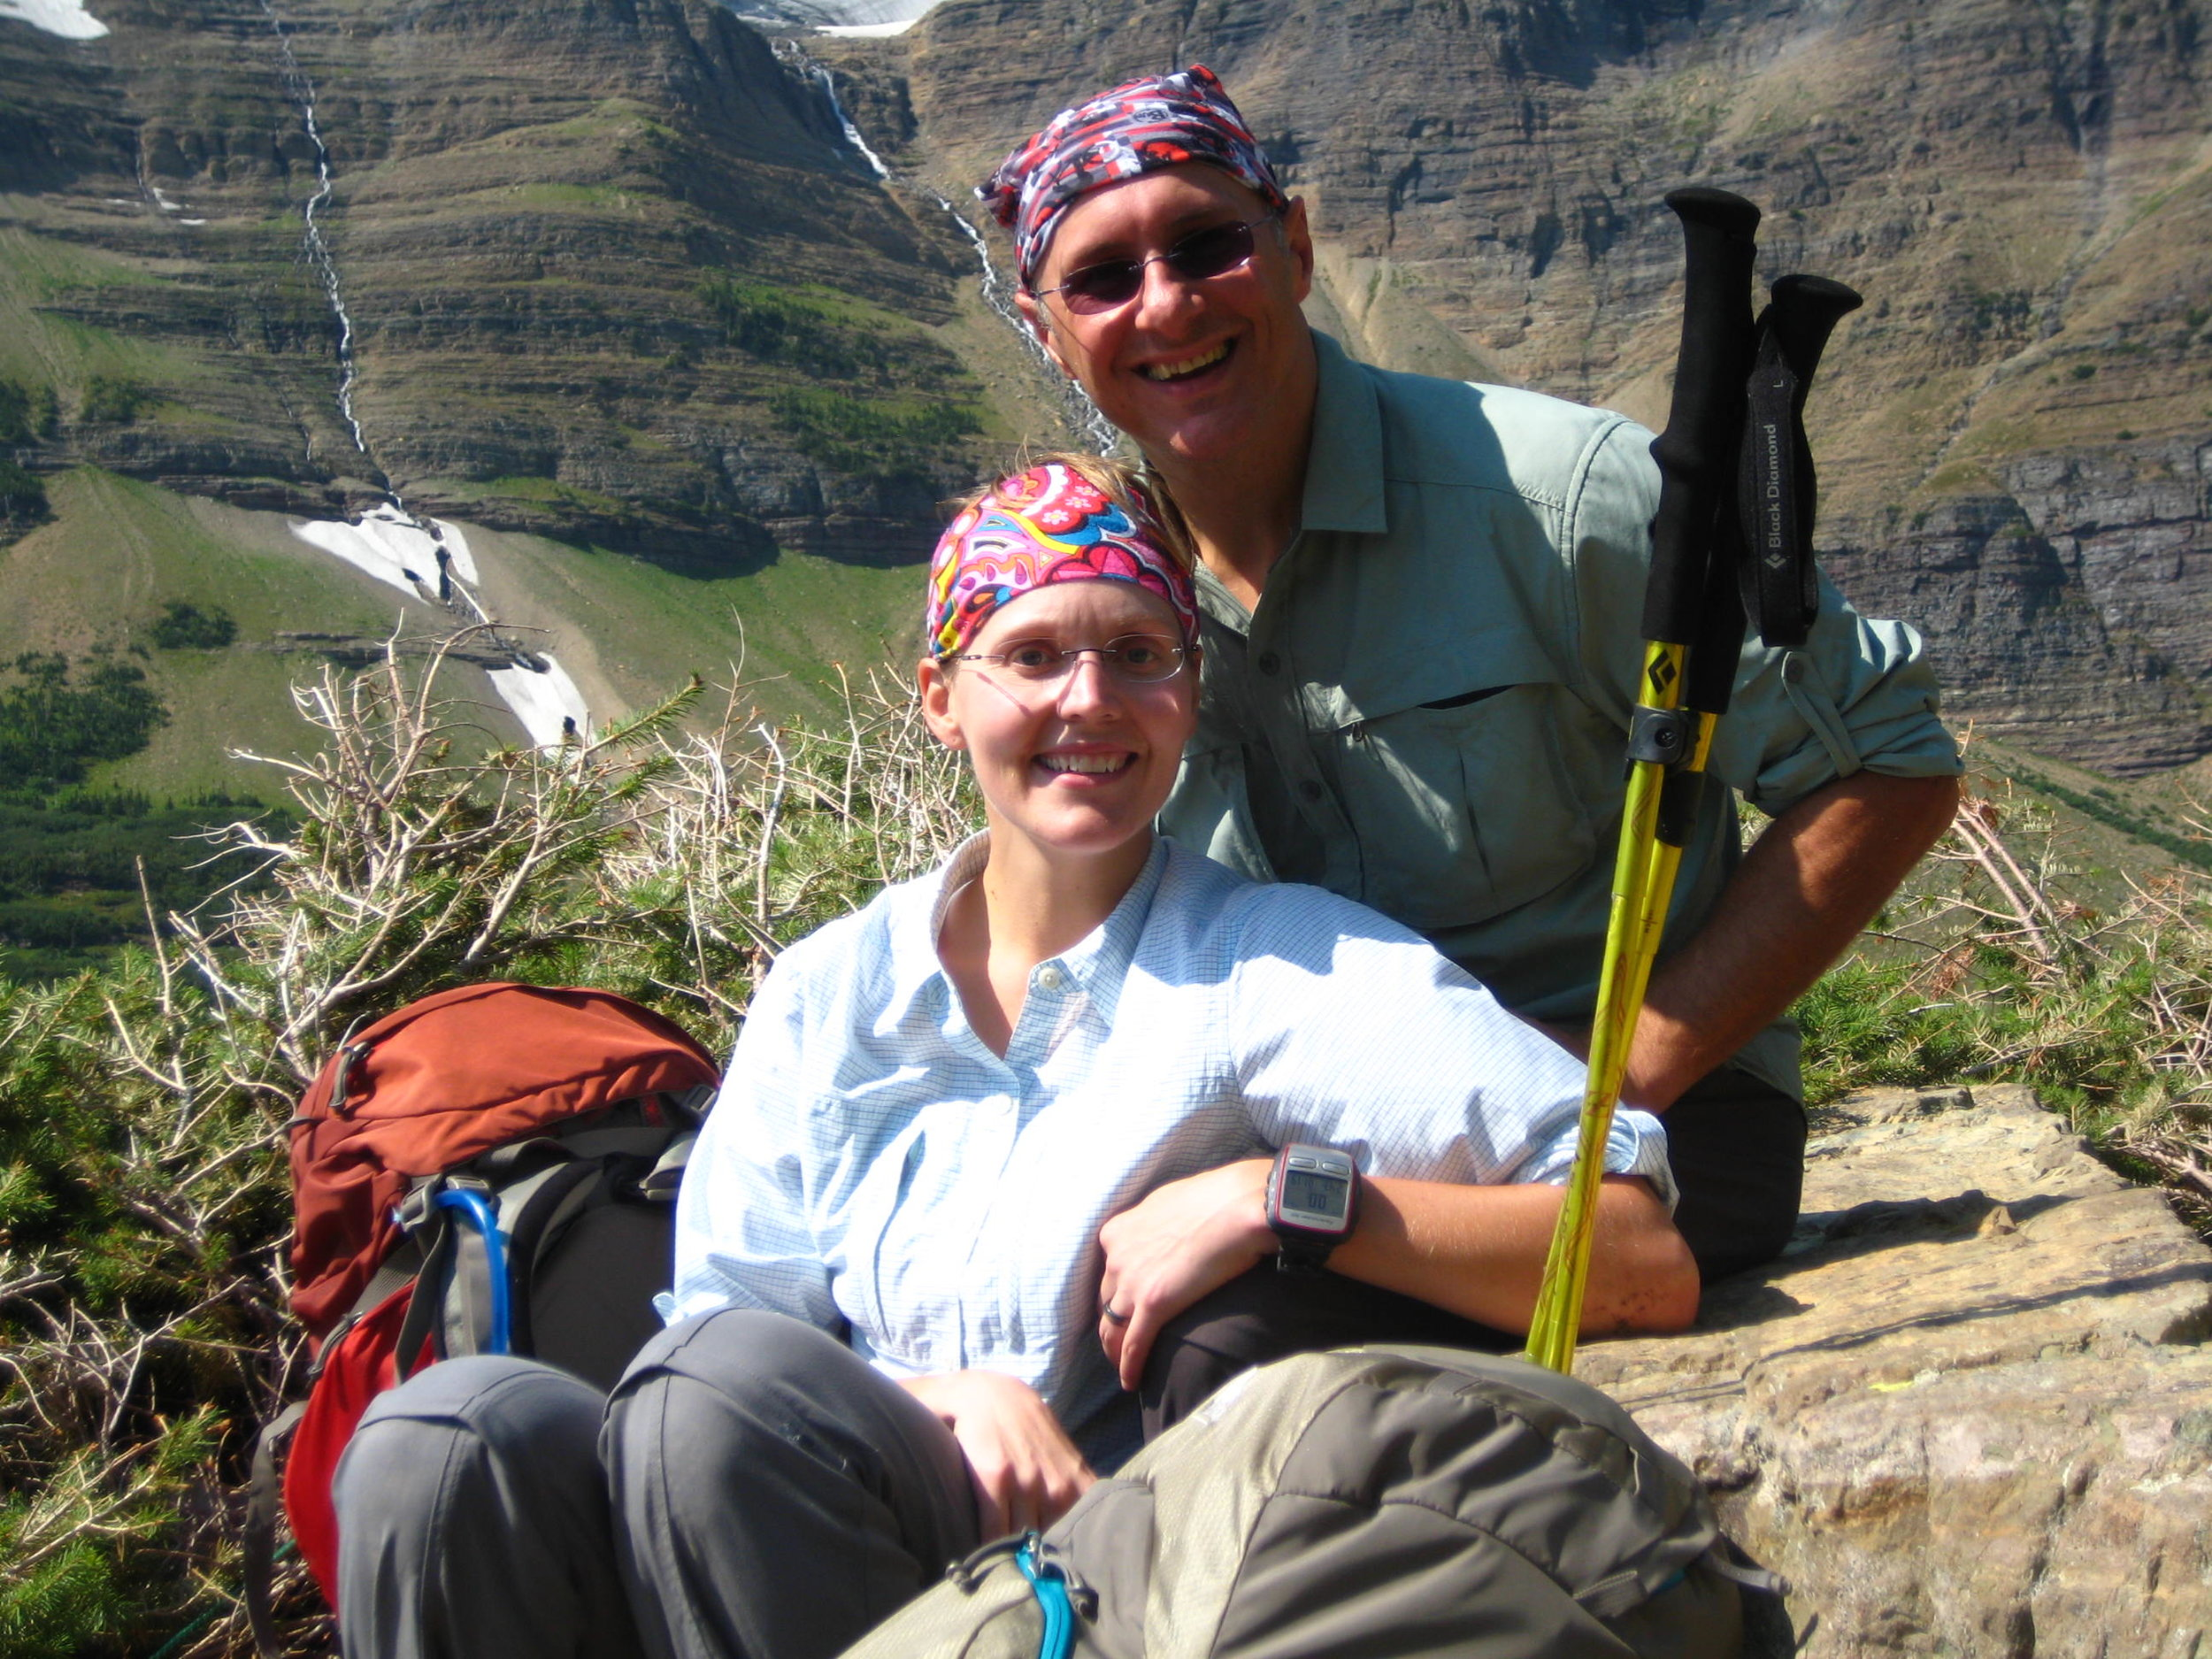 Dave & his wife, Erin, hiking in Glacier National Park